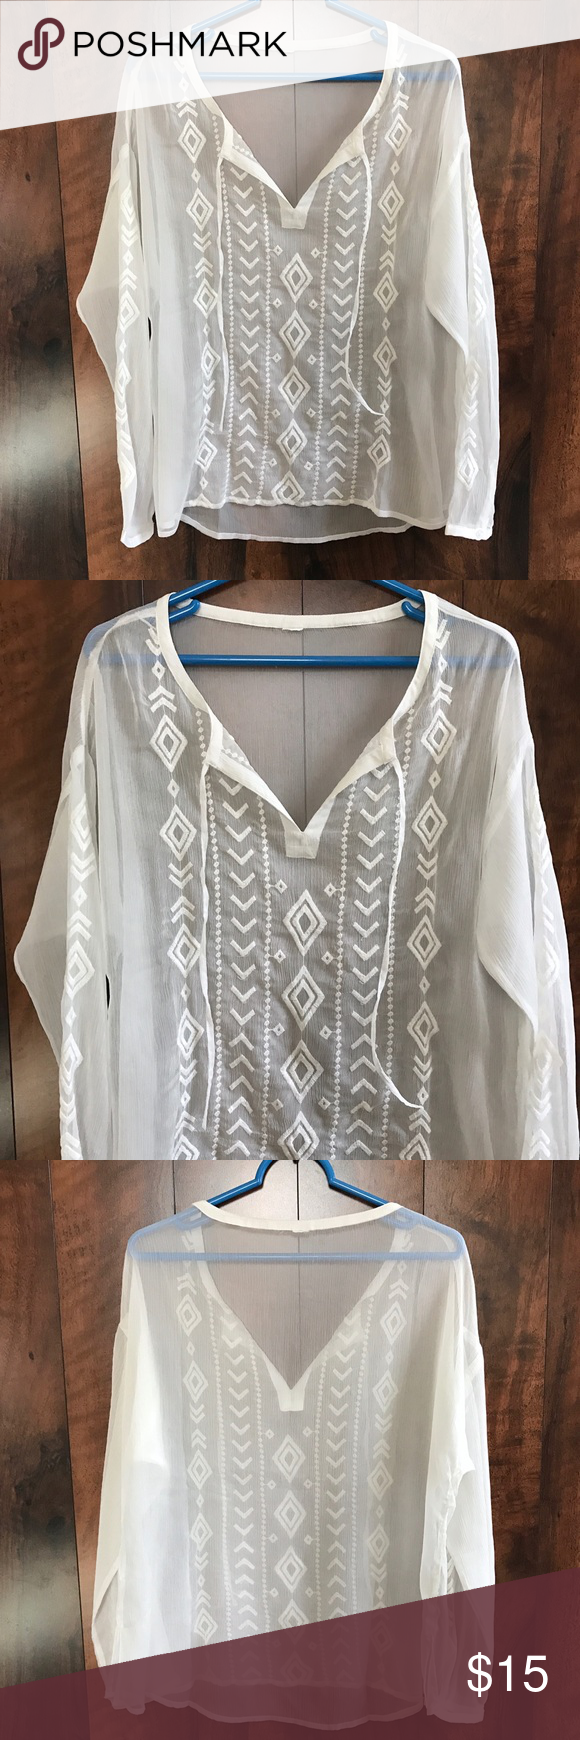 White Sheer Boho Blouse Excellent used condition. Sheer white with embroidered design down the front and down the sleeves. Button cuff. Tops Blouses